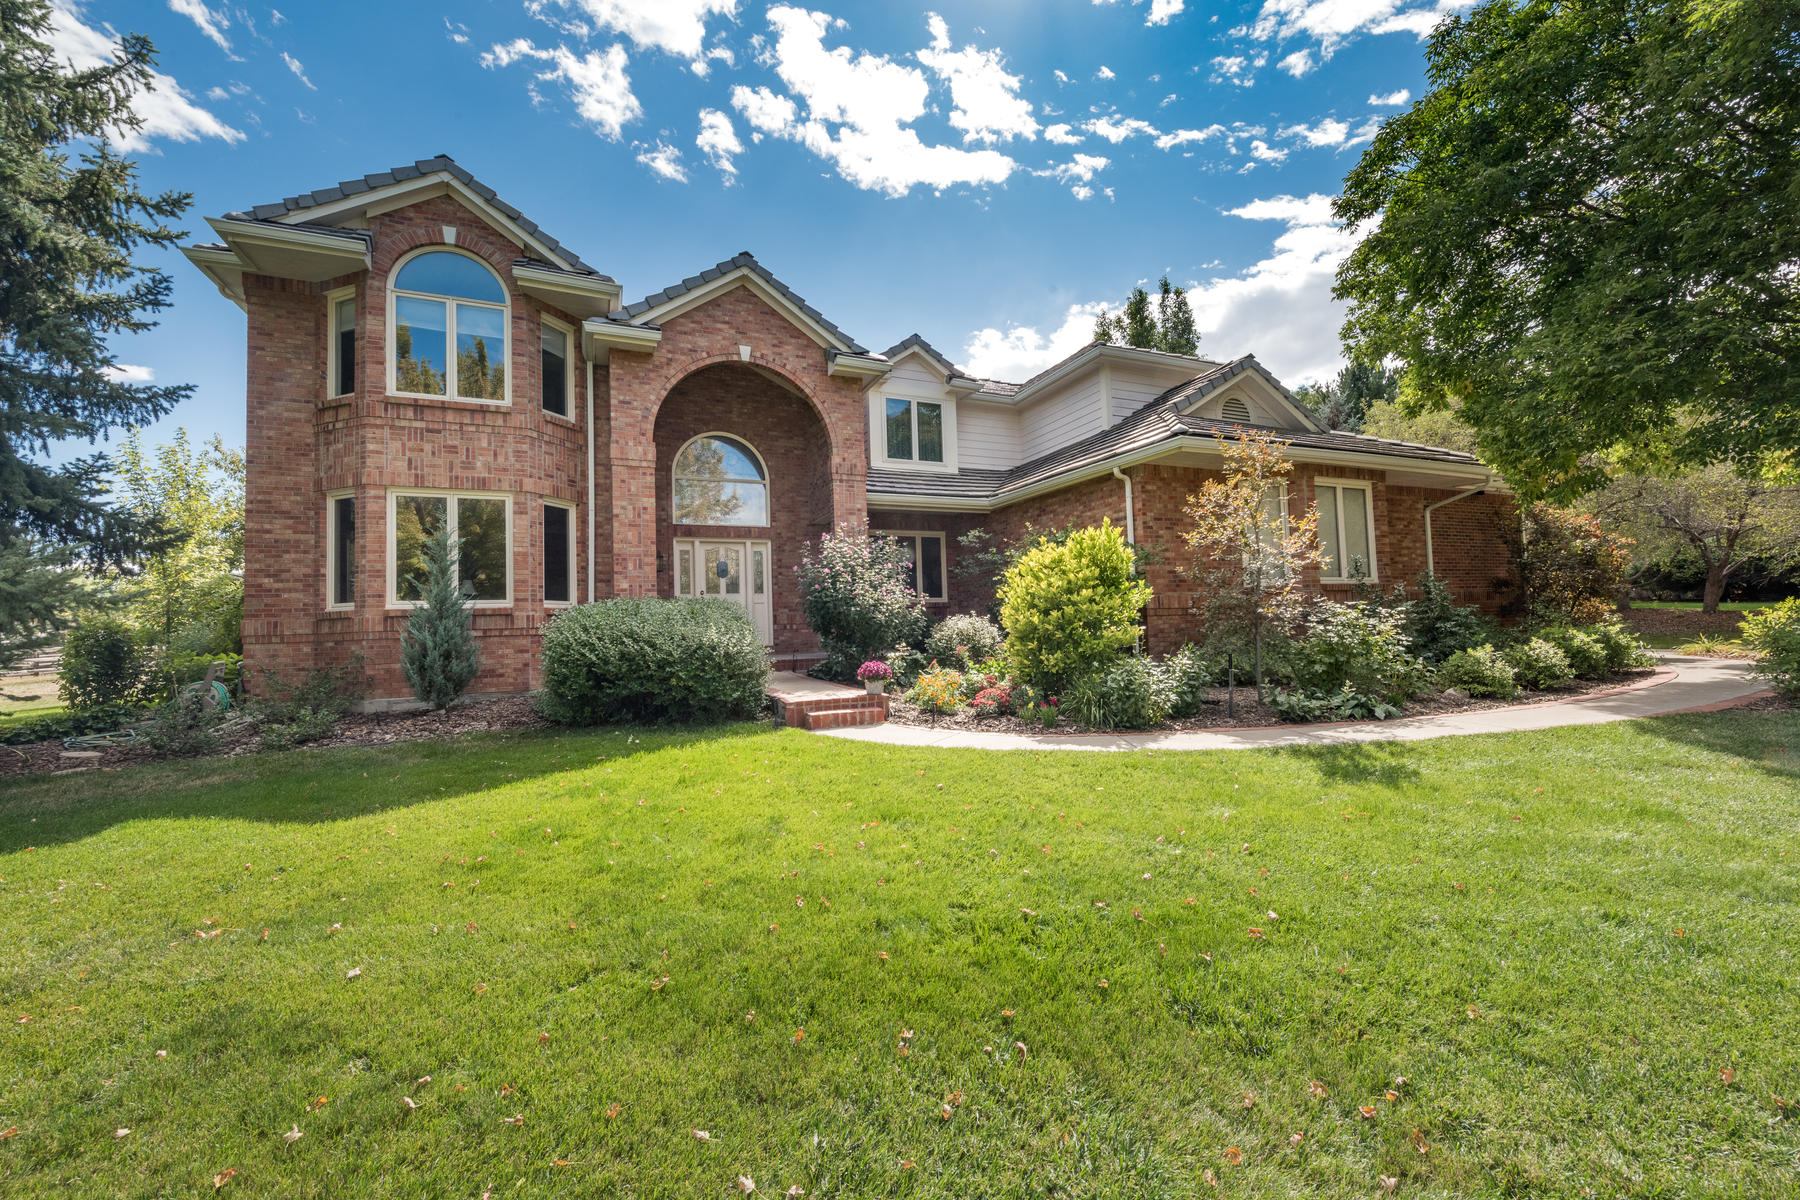 Single Family Homes for Sale at Custom 2-story home nestled on a serene park-like lot in Greenwood Village 5430 S Cottonwood Ct Greenwood Village, Colorado 80121 United States